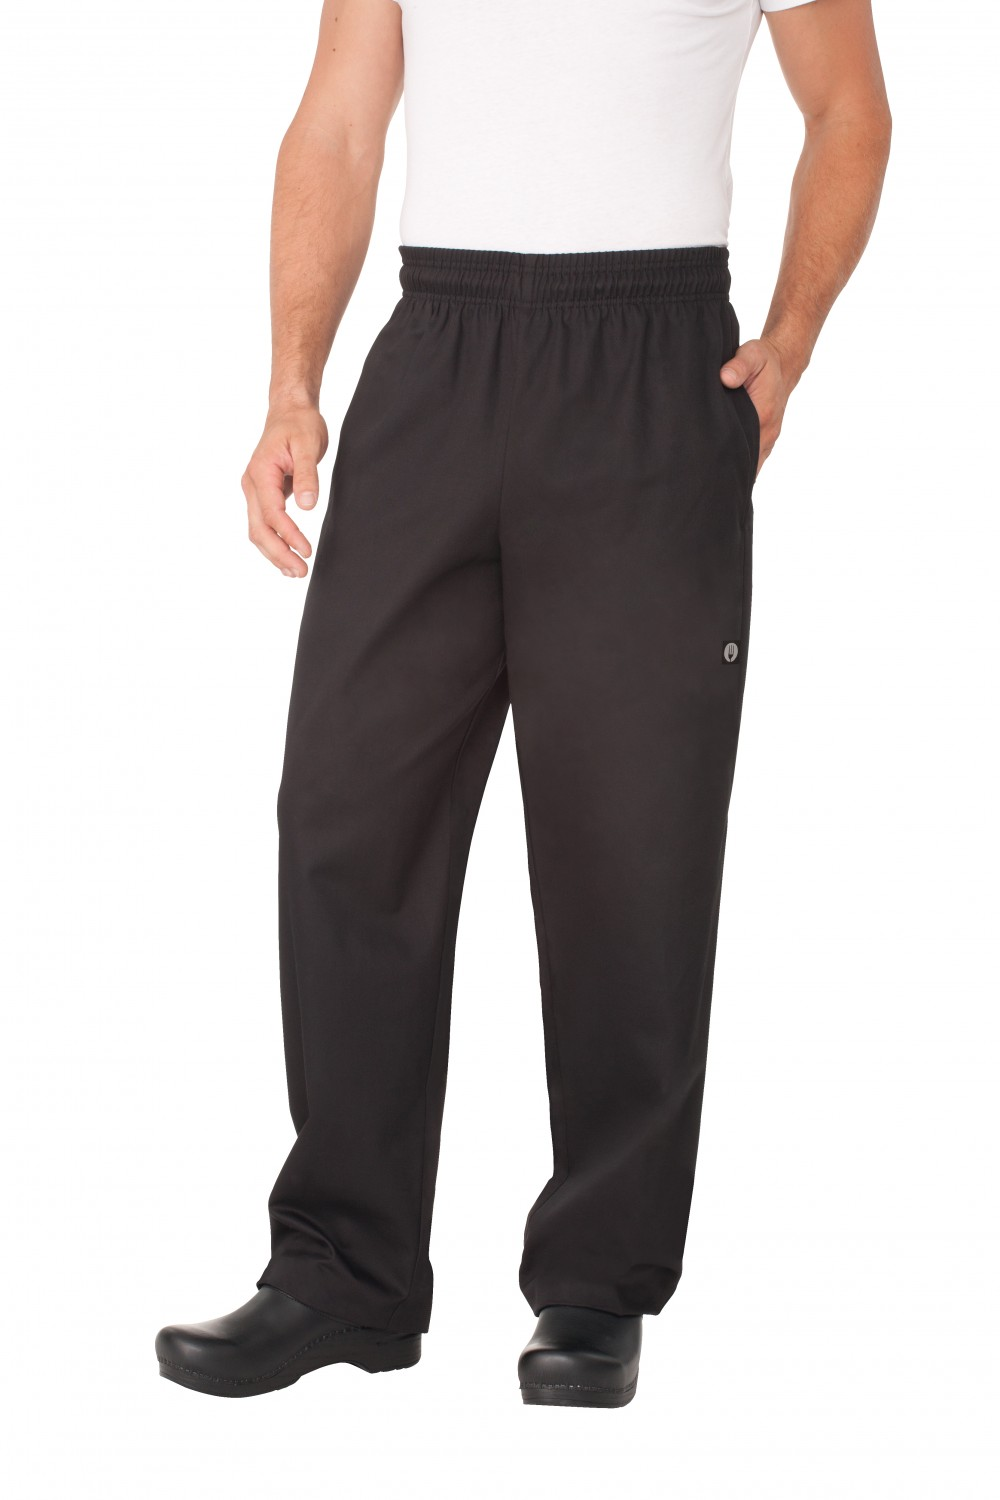 Chef Works EBCP Black Designer Baggy Pants